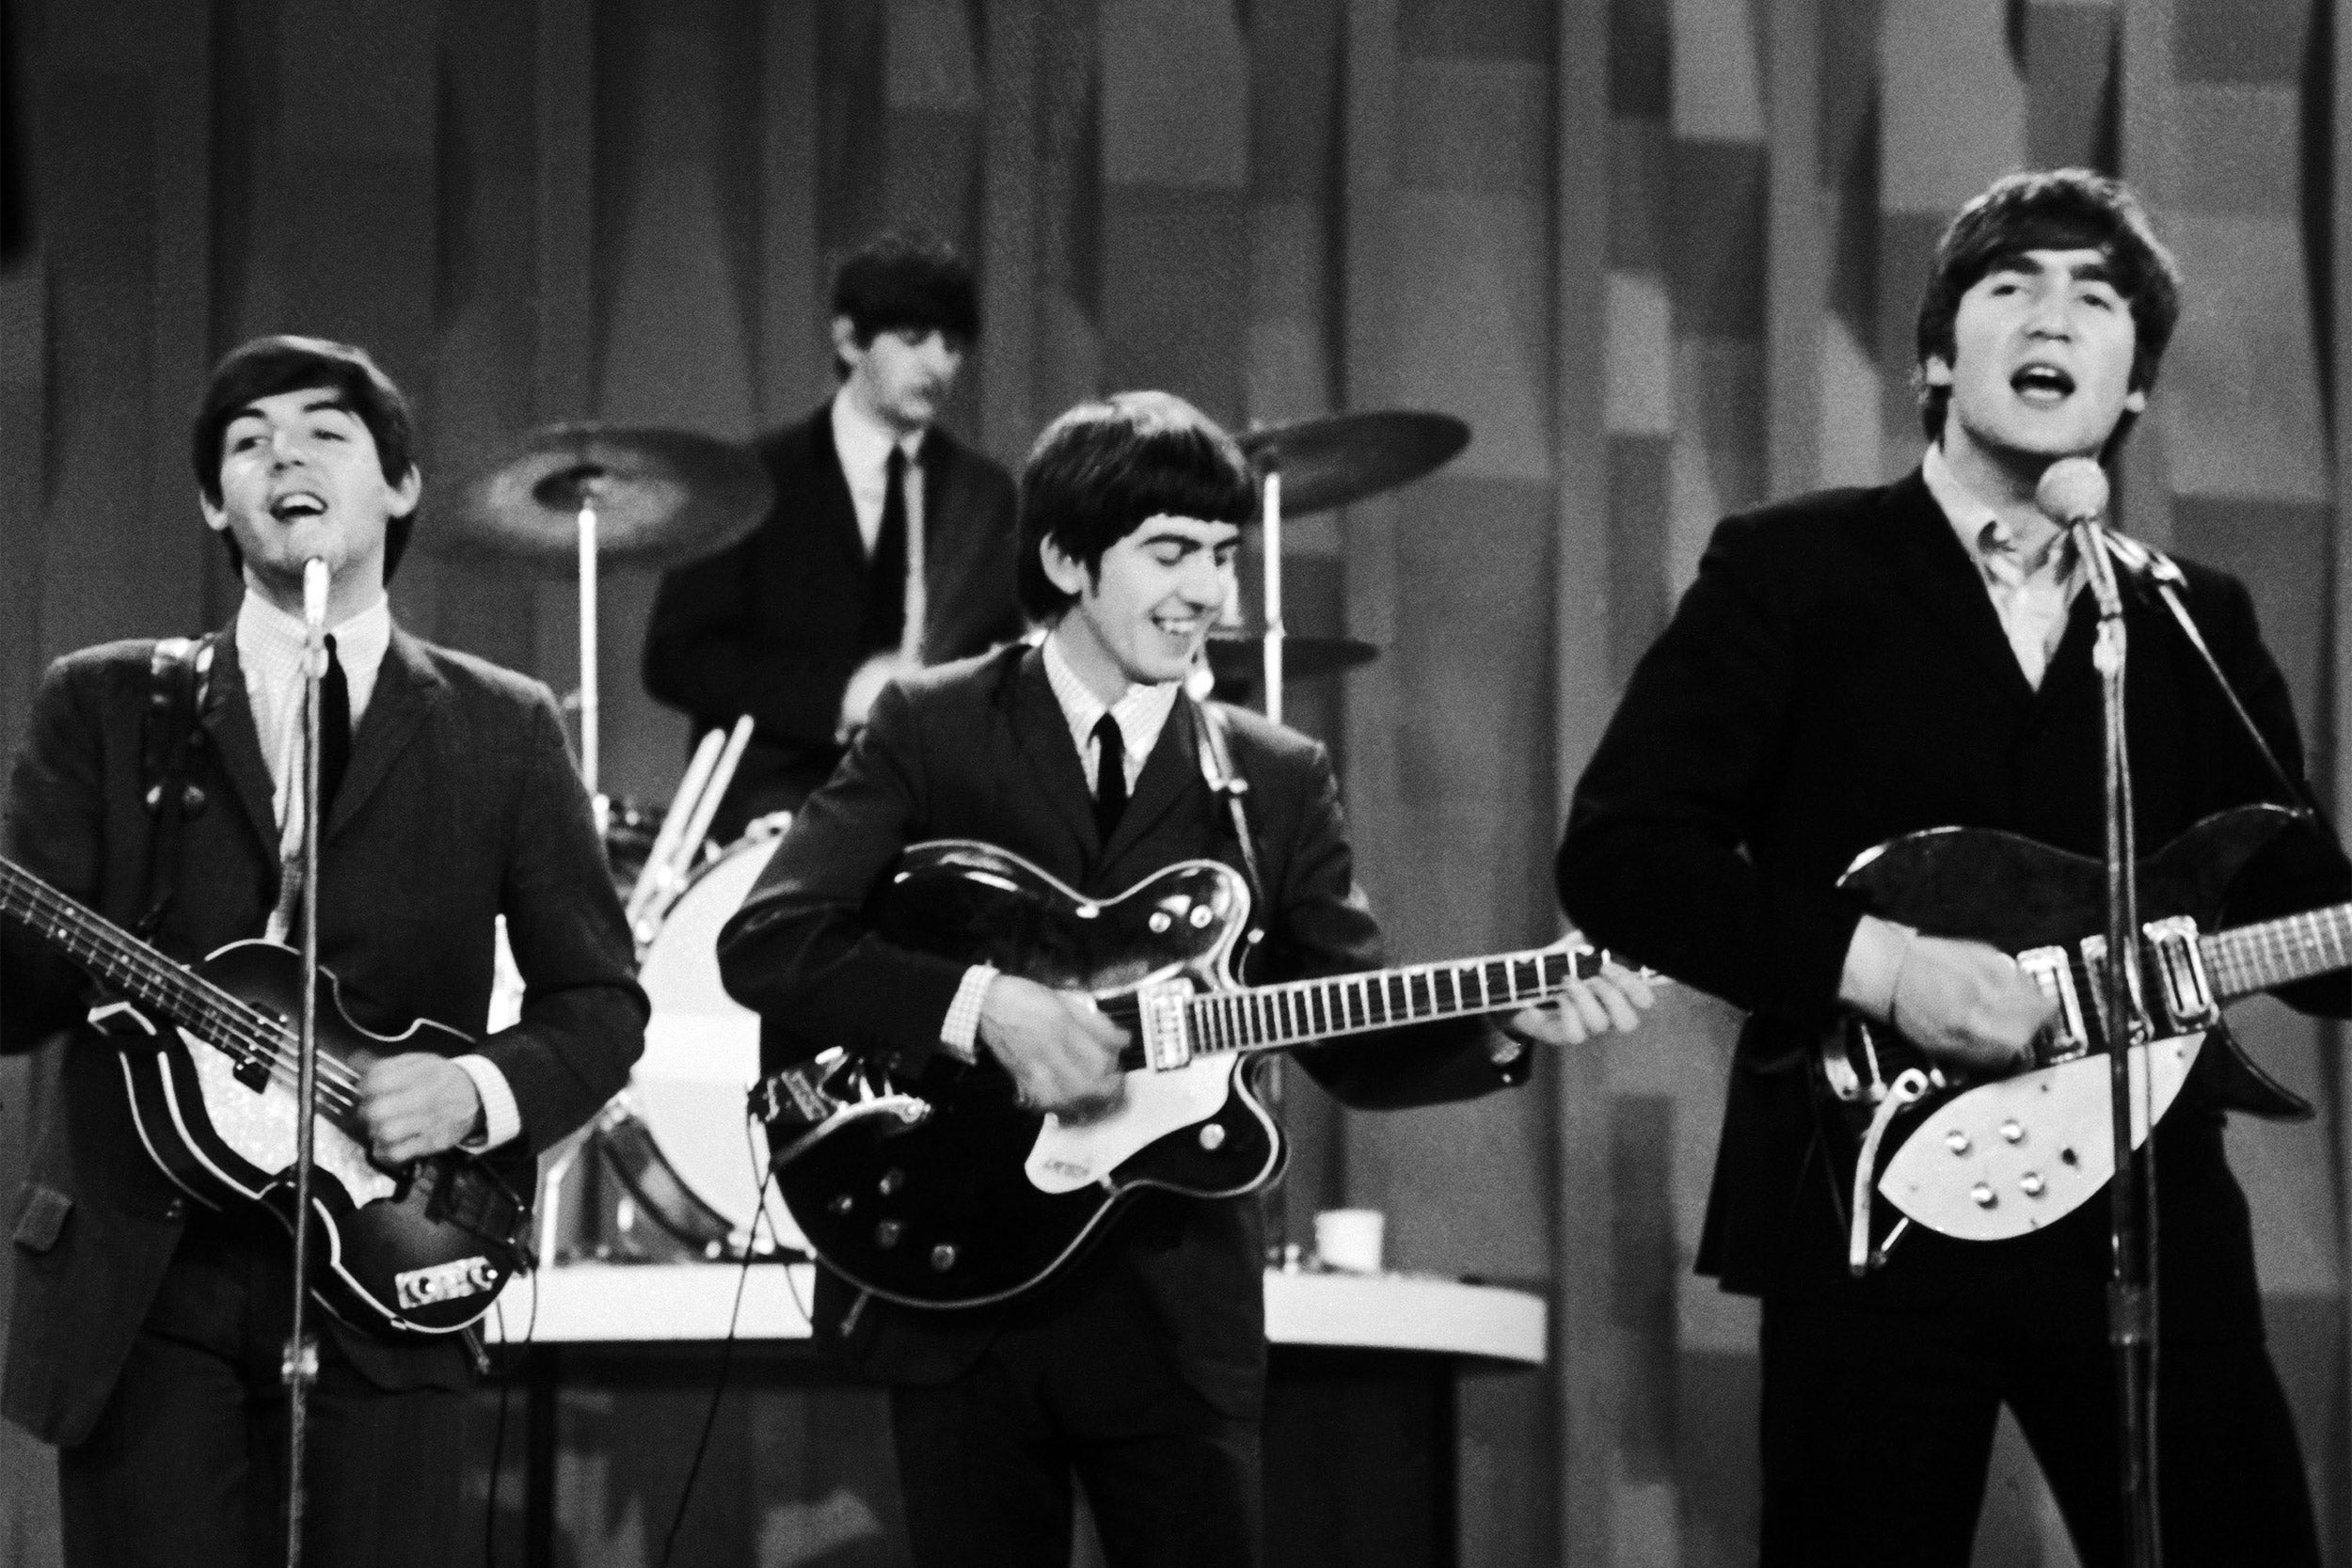 Kenneth Womack explains why the Beatles were 'proto-feminists'